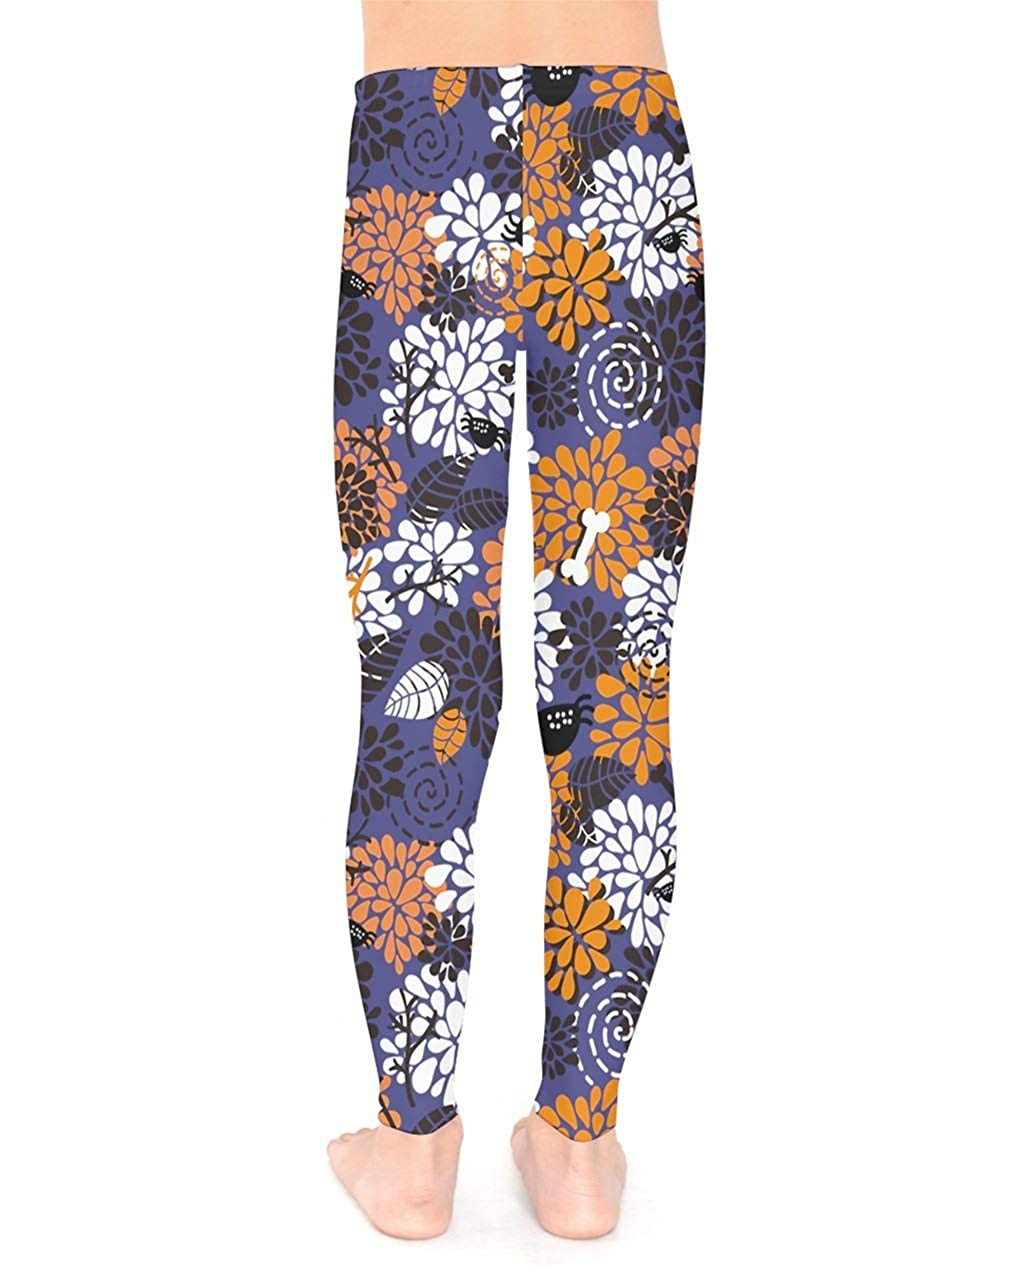 PattyCandy Girls Boys Leggings Stretchable Cool 3D Halloween /& Funny Ghost Print for 2-13 Years Old